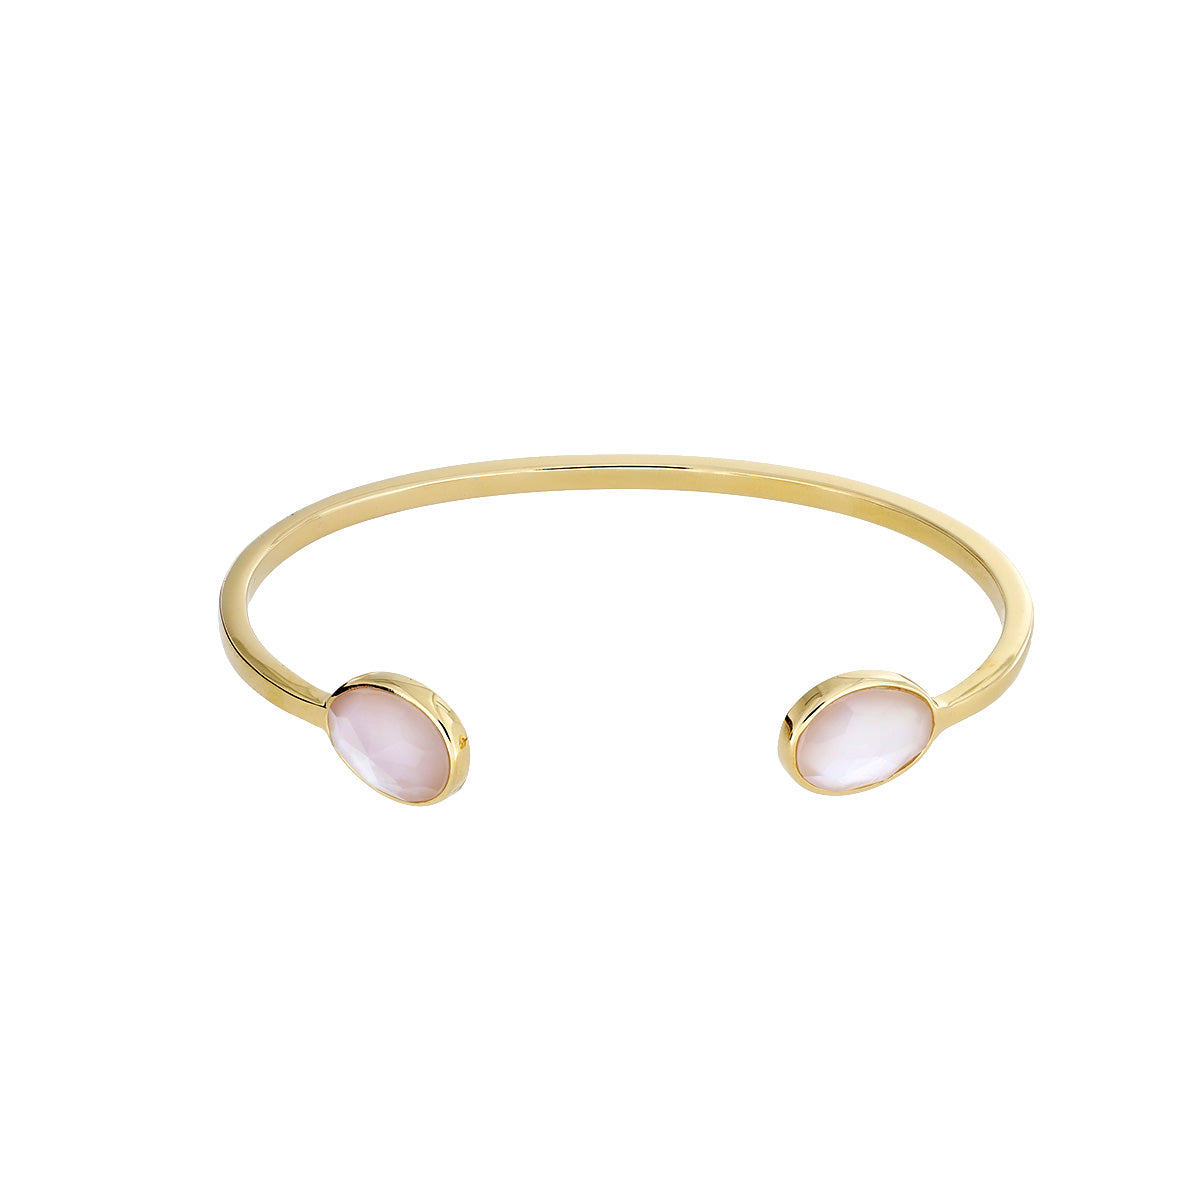 Gold Vermeil & Mother of Pearl Teardrops Cuff